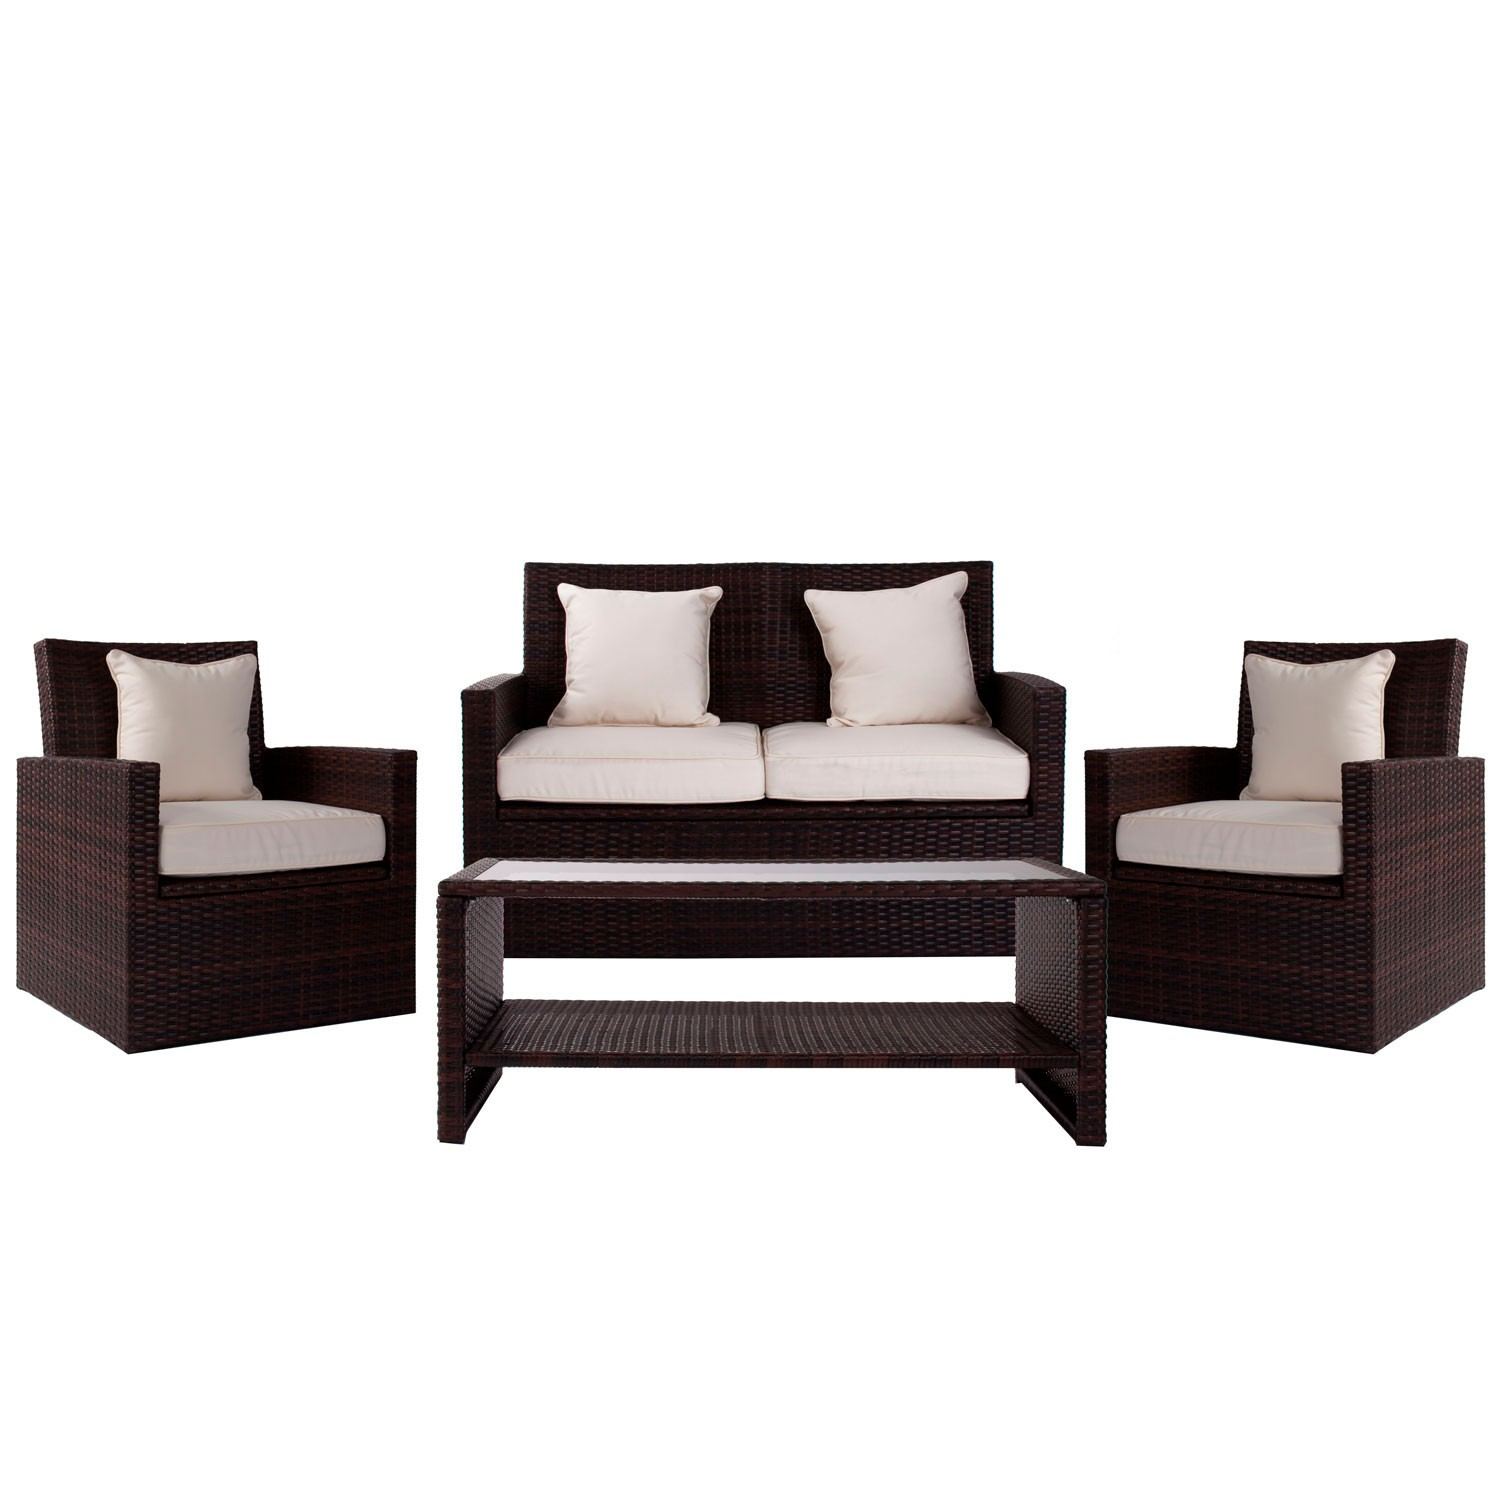 Set de 4 Muebles Jardin Cool en Hogardecora.es